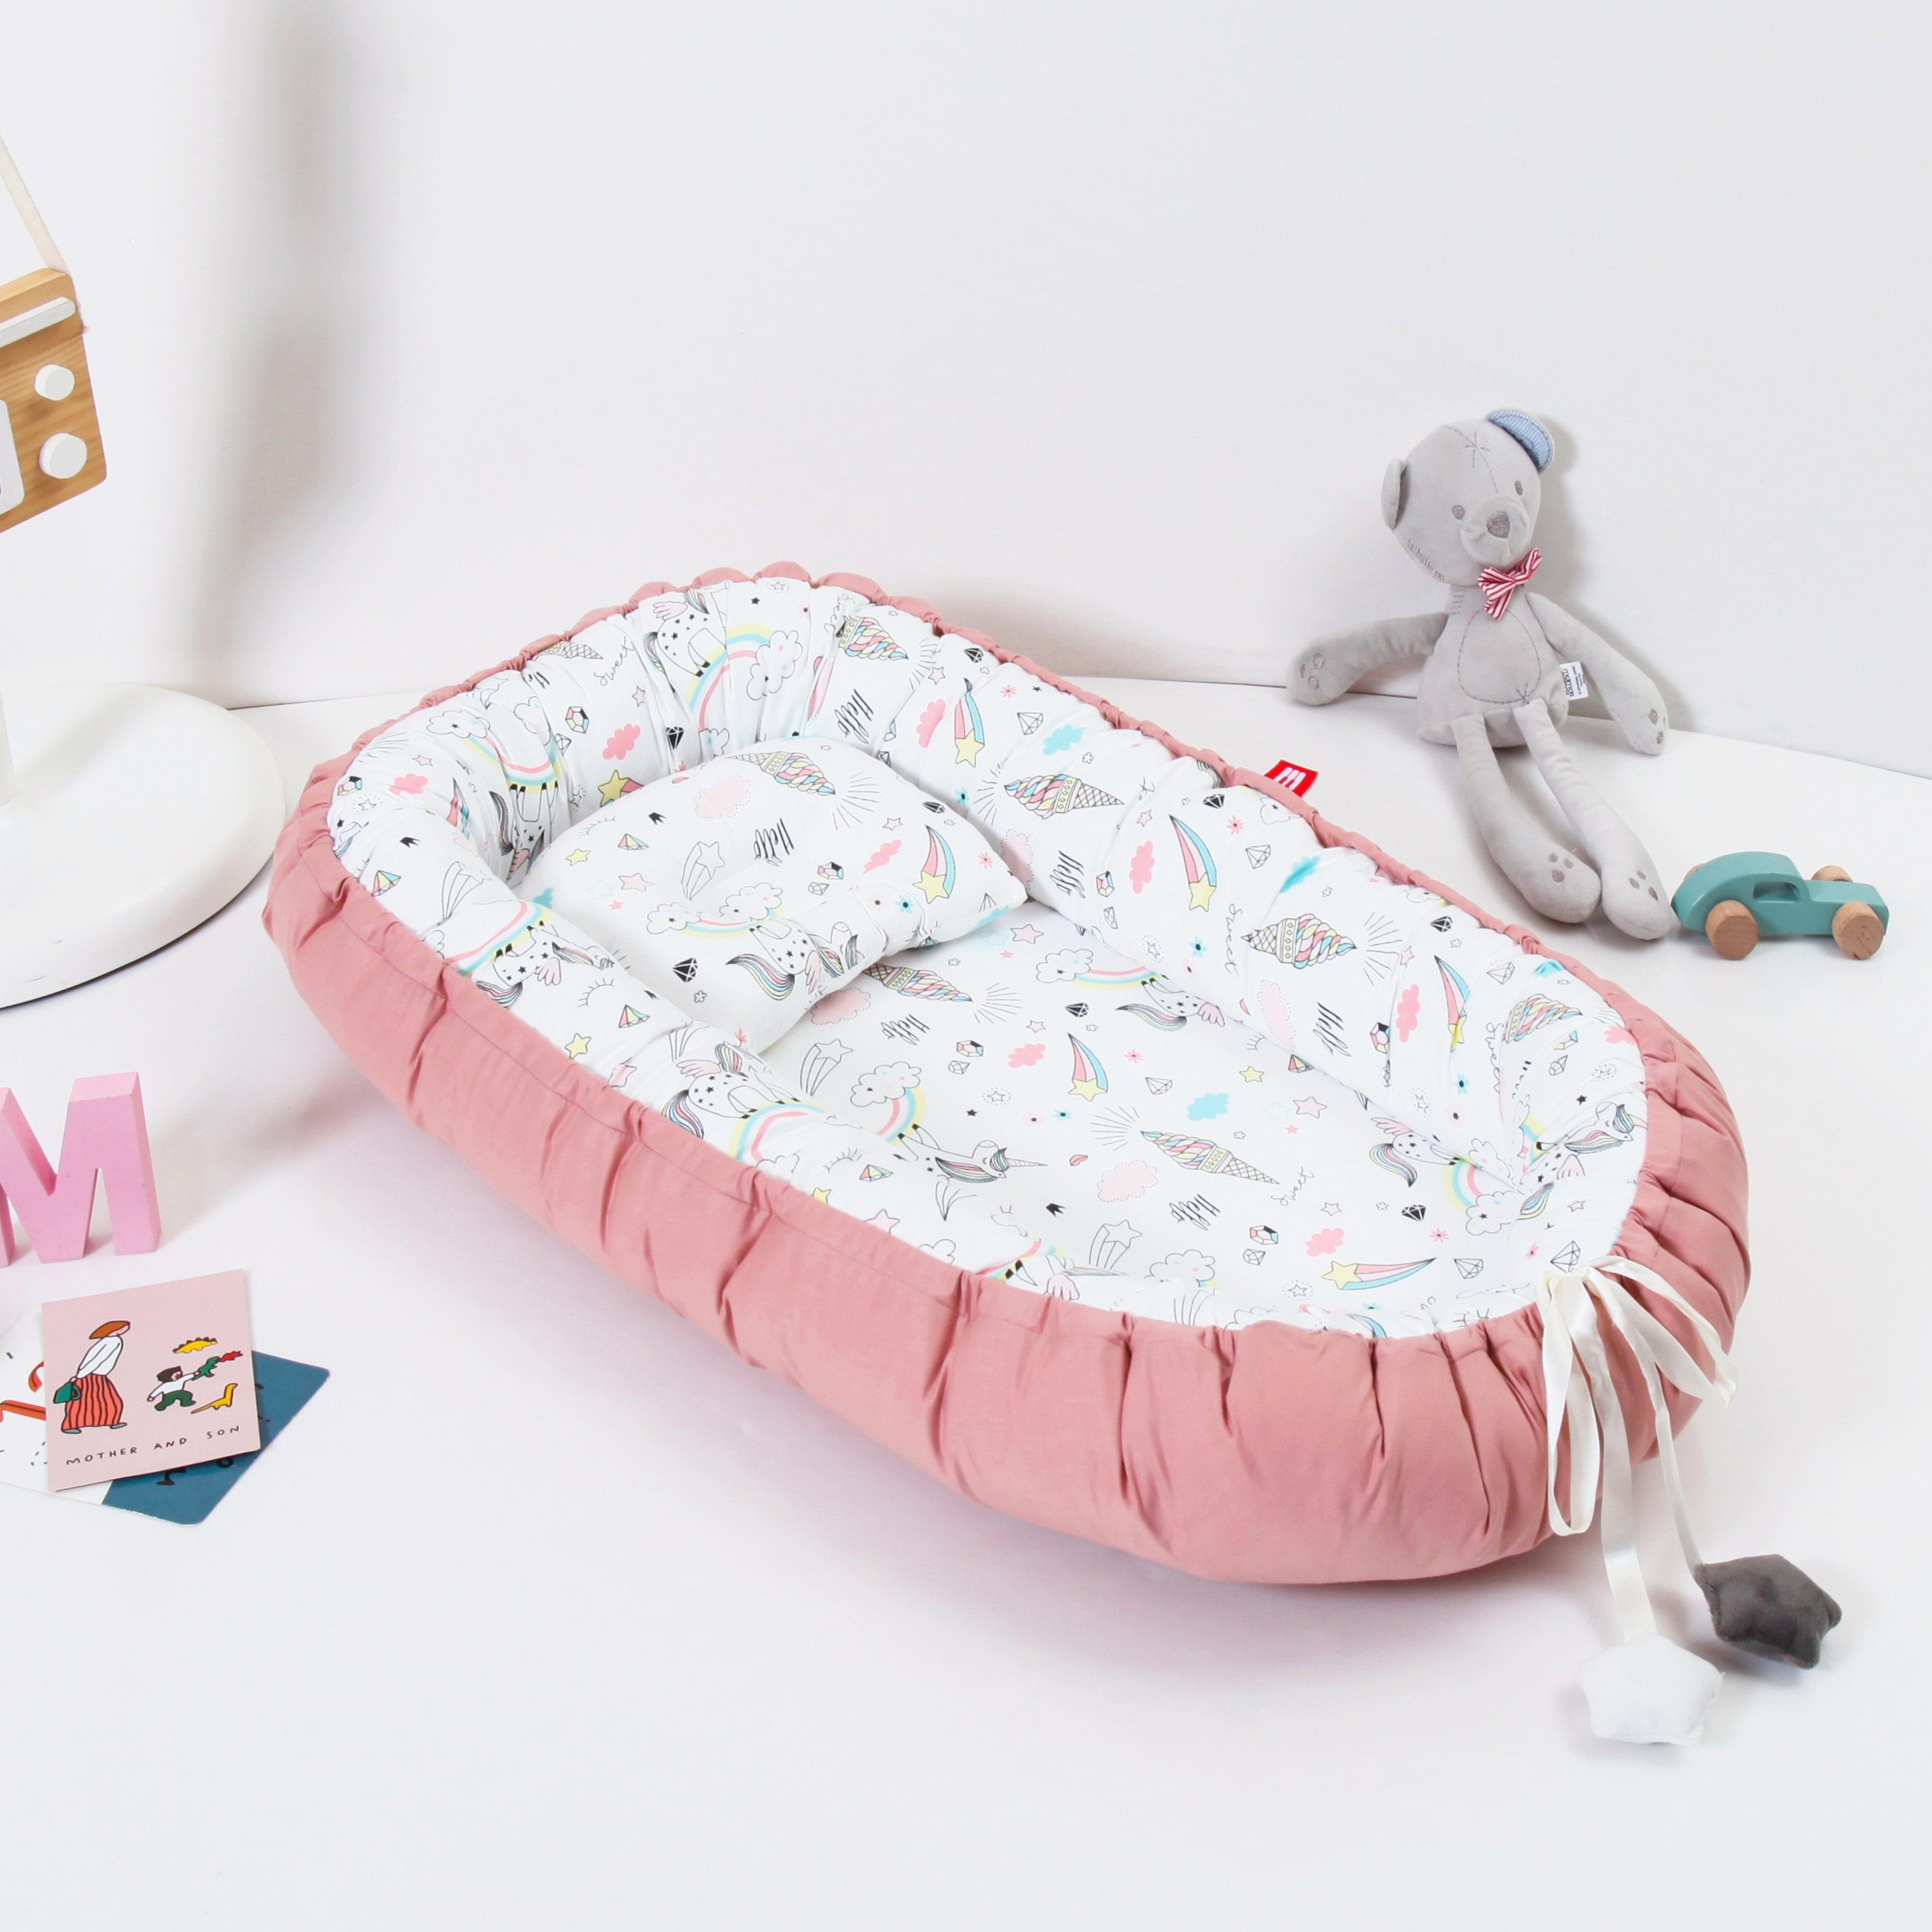 85X50cm Portable Baby Bed Newborn Crib Nest Mattress Baby Cradle With Pillow Removable Bed Pad